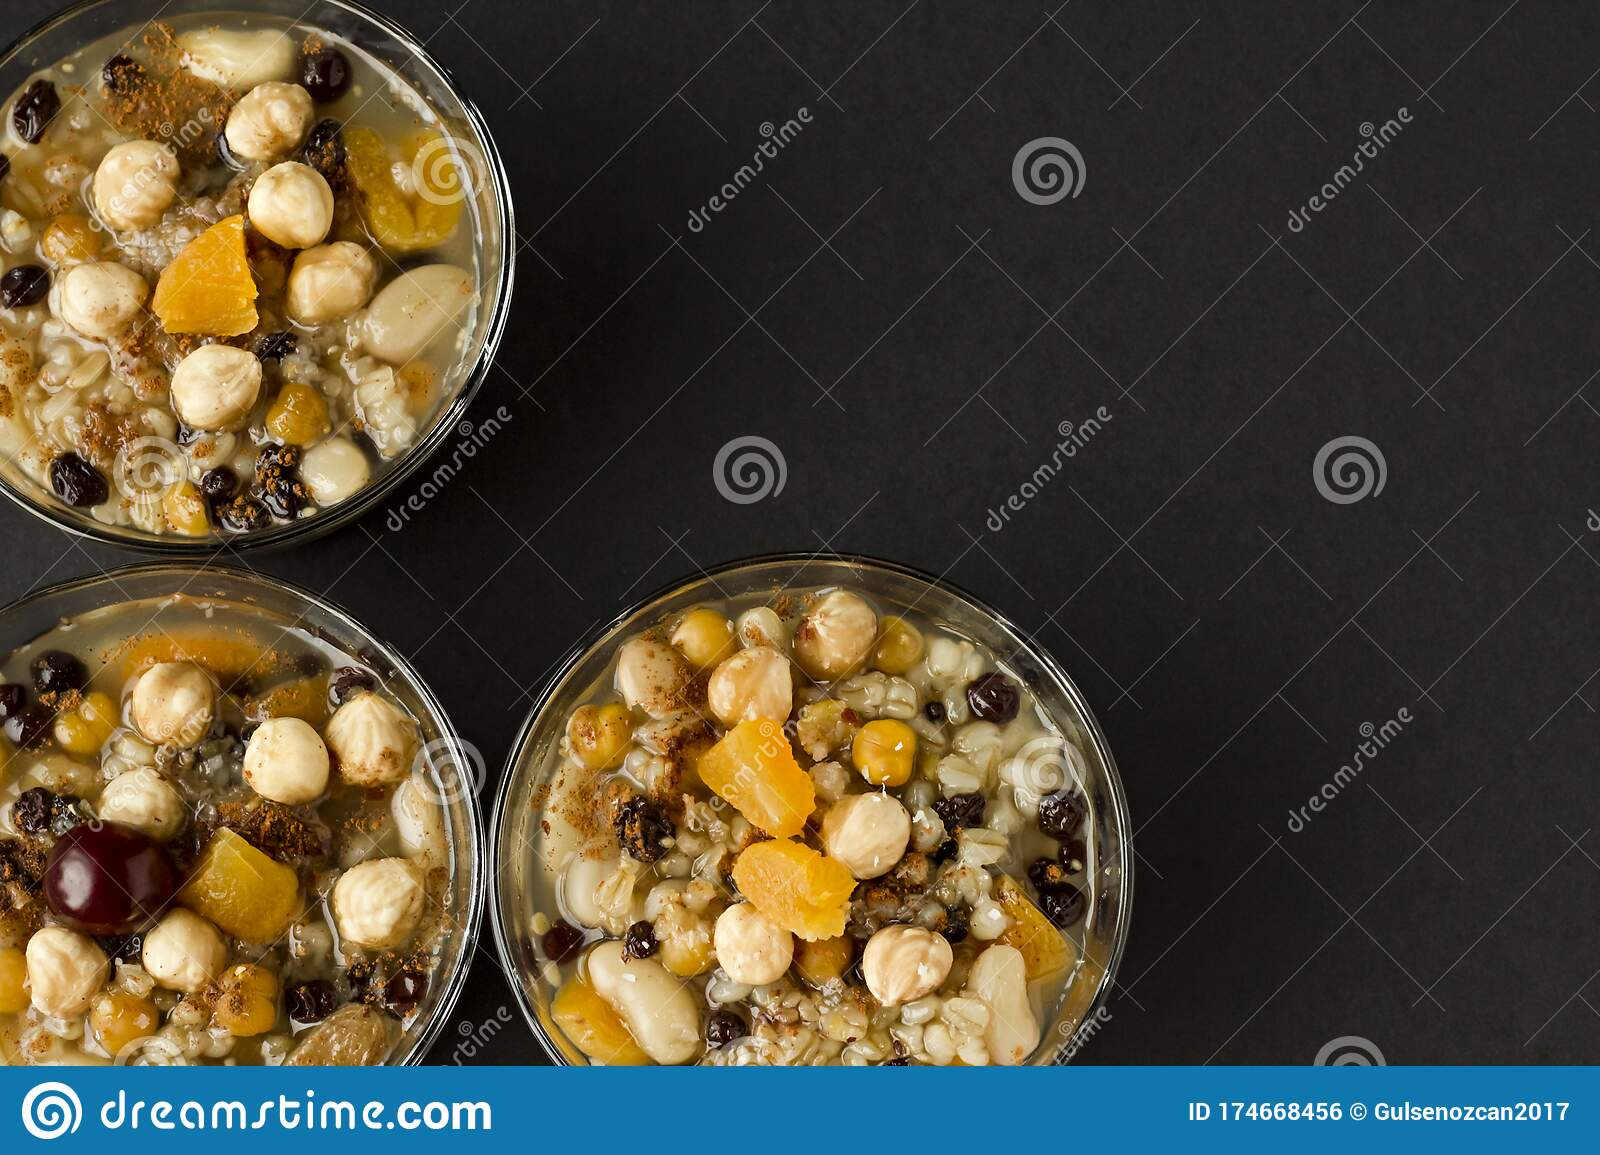 Turkish Dessert Asure Or Noah S Ark Pudding In Glass Bowls On Black Stock Photo Image Of Background Healthy 174668456 This is an updated searchable list of the ark item ids for players and server adminstrators from dlcs and pc, xbox, and ps4 platforms. dreamstime com